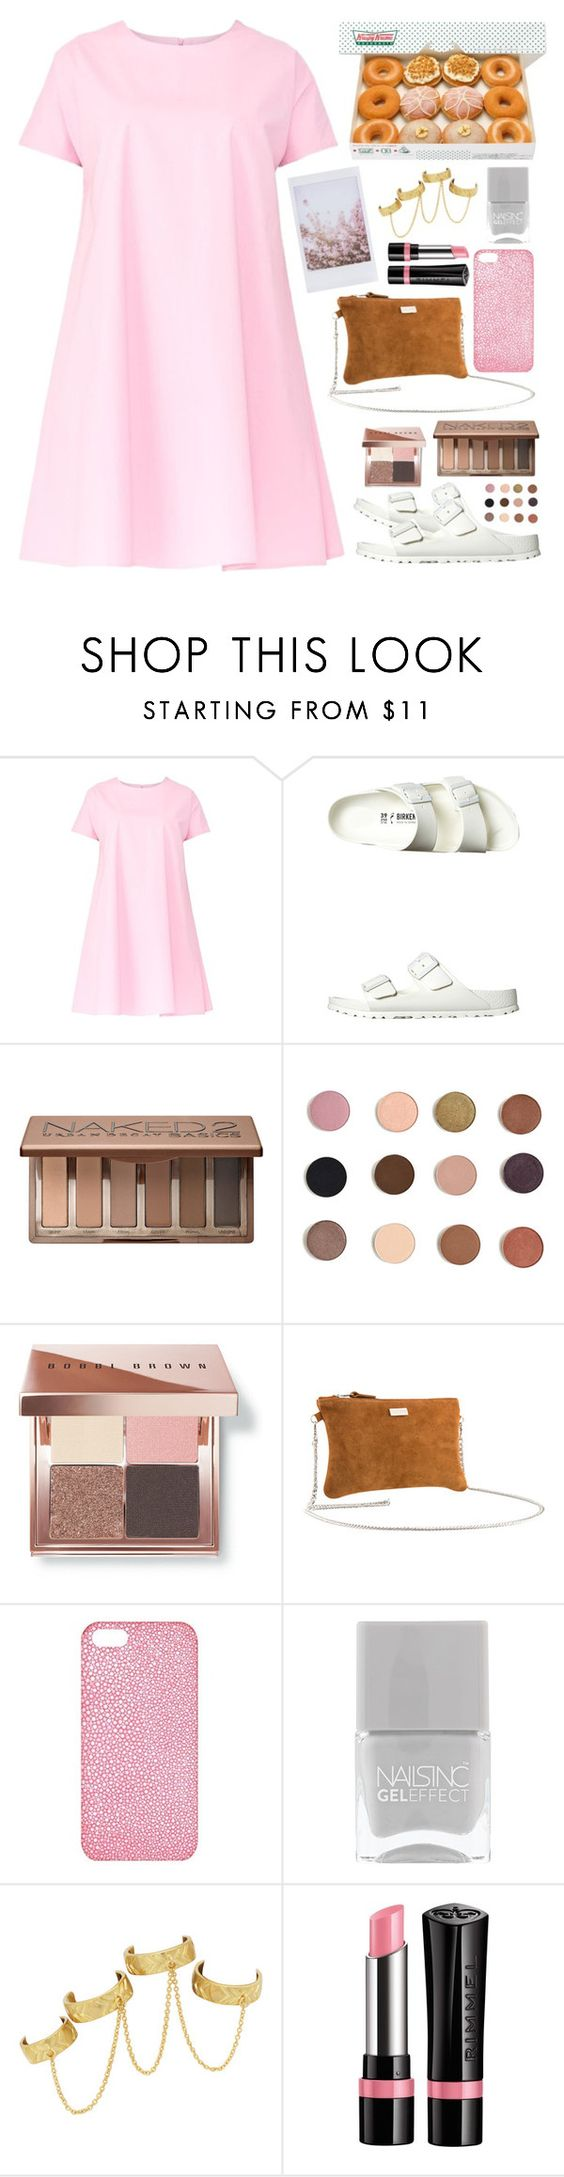 """Change of heart"" by maddie-dancer ❤ liked on Polyvore featuring Maiocci, Birkenstock, Urban Decay, Bobbi Brown Cosmetics, Black & Brown London, Maison Takuya, Nails Inc., House of Harlow 1960 and Rimmel"